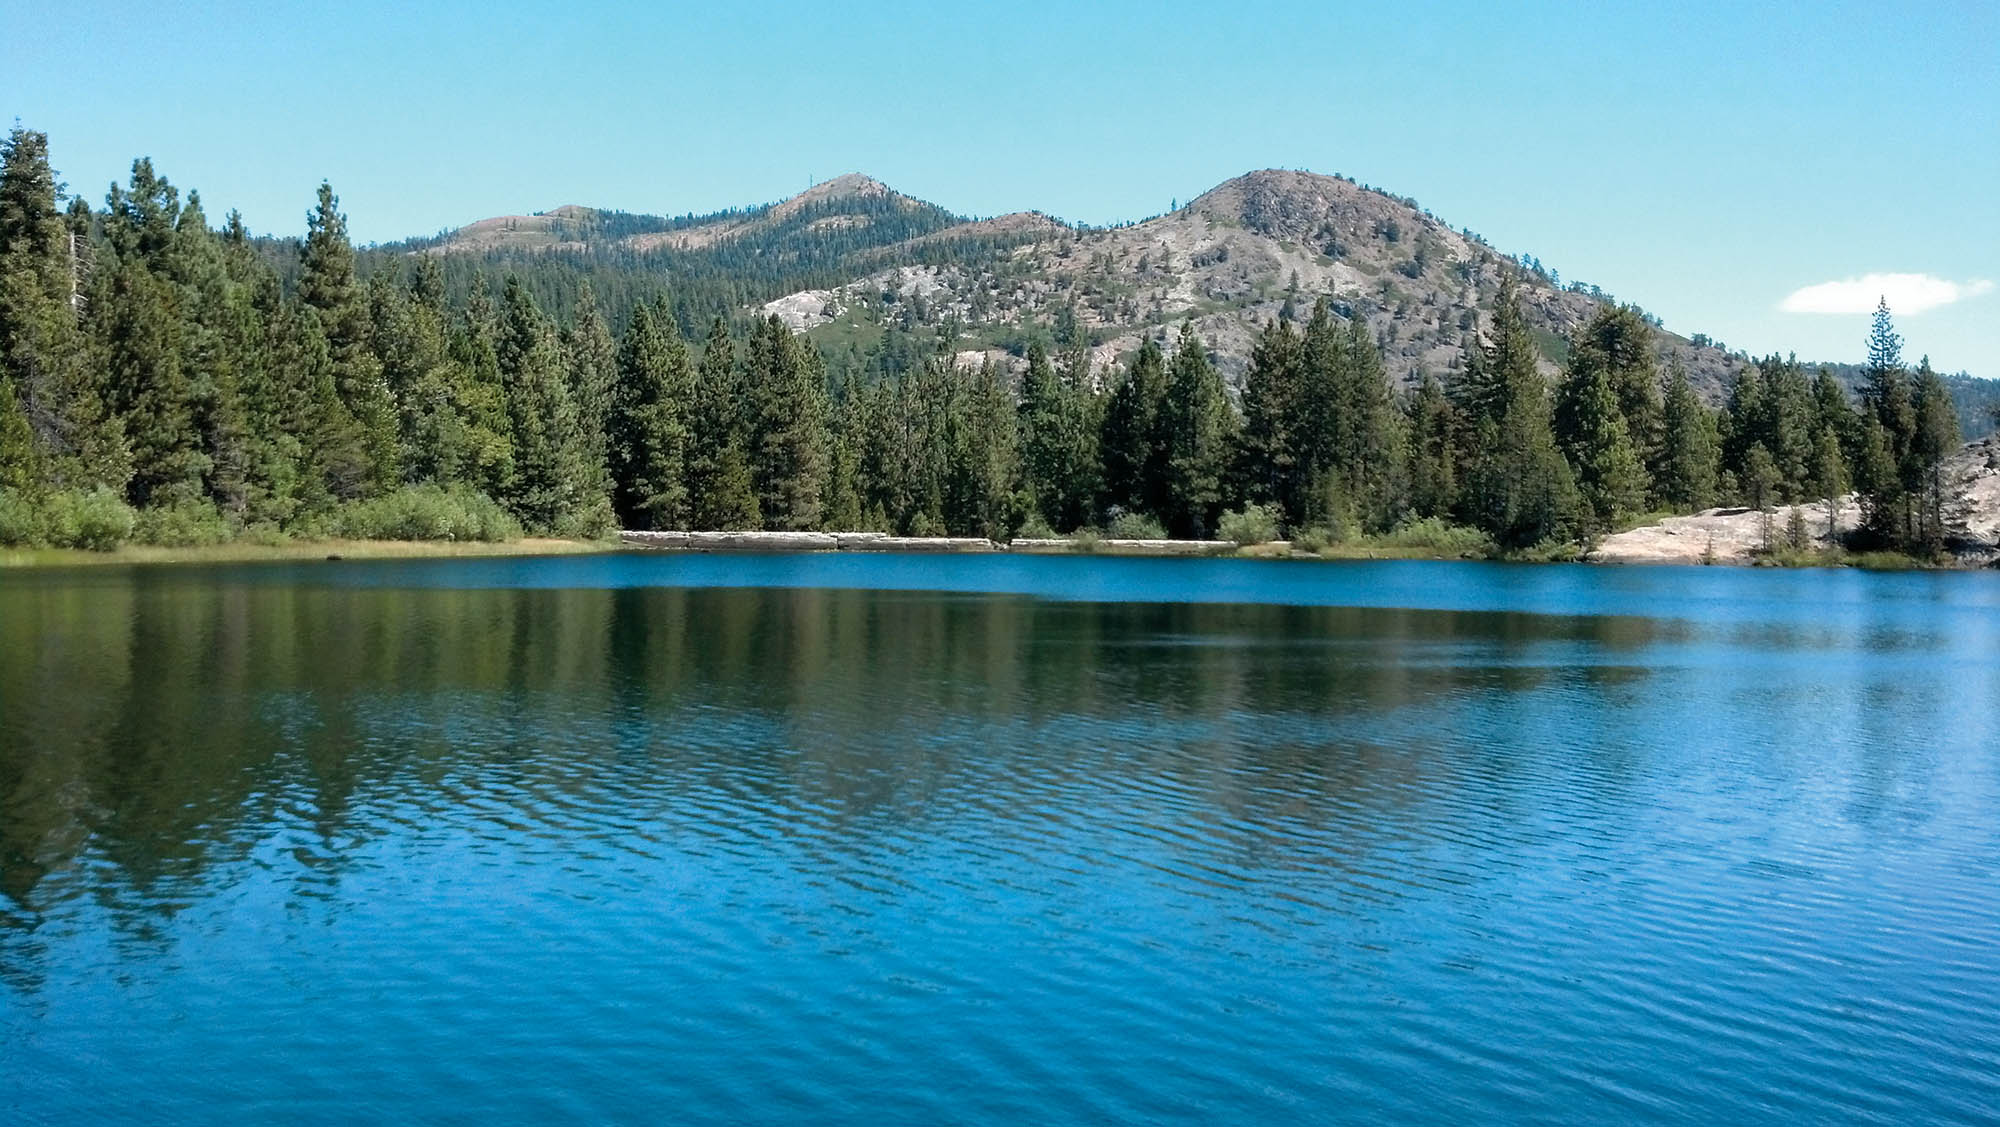 Crystal Lake, Emigrant Gap, CA,  price upon request